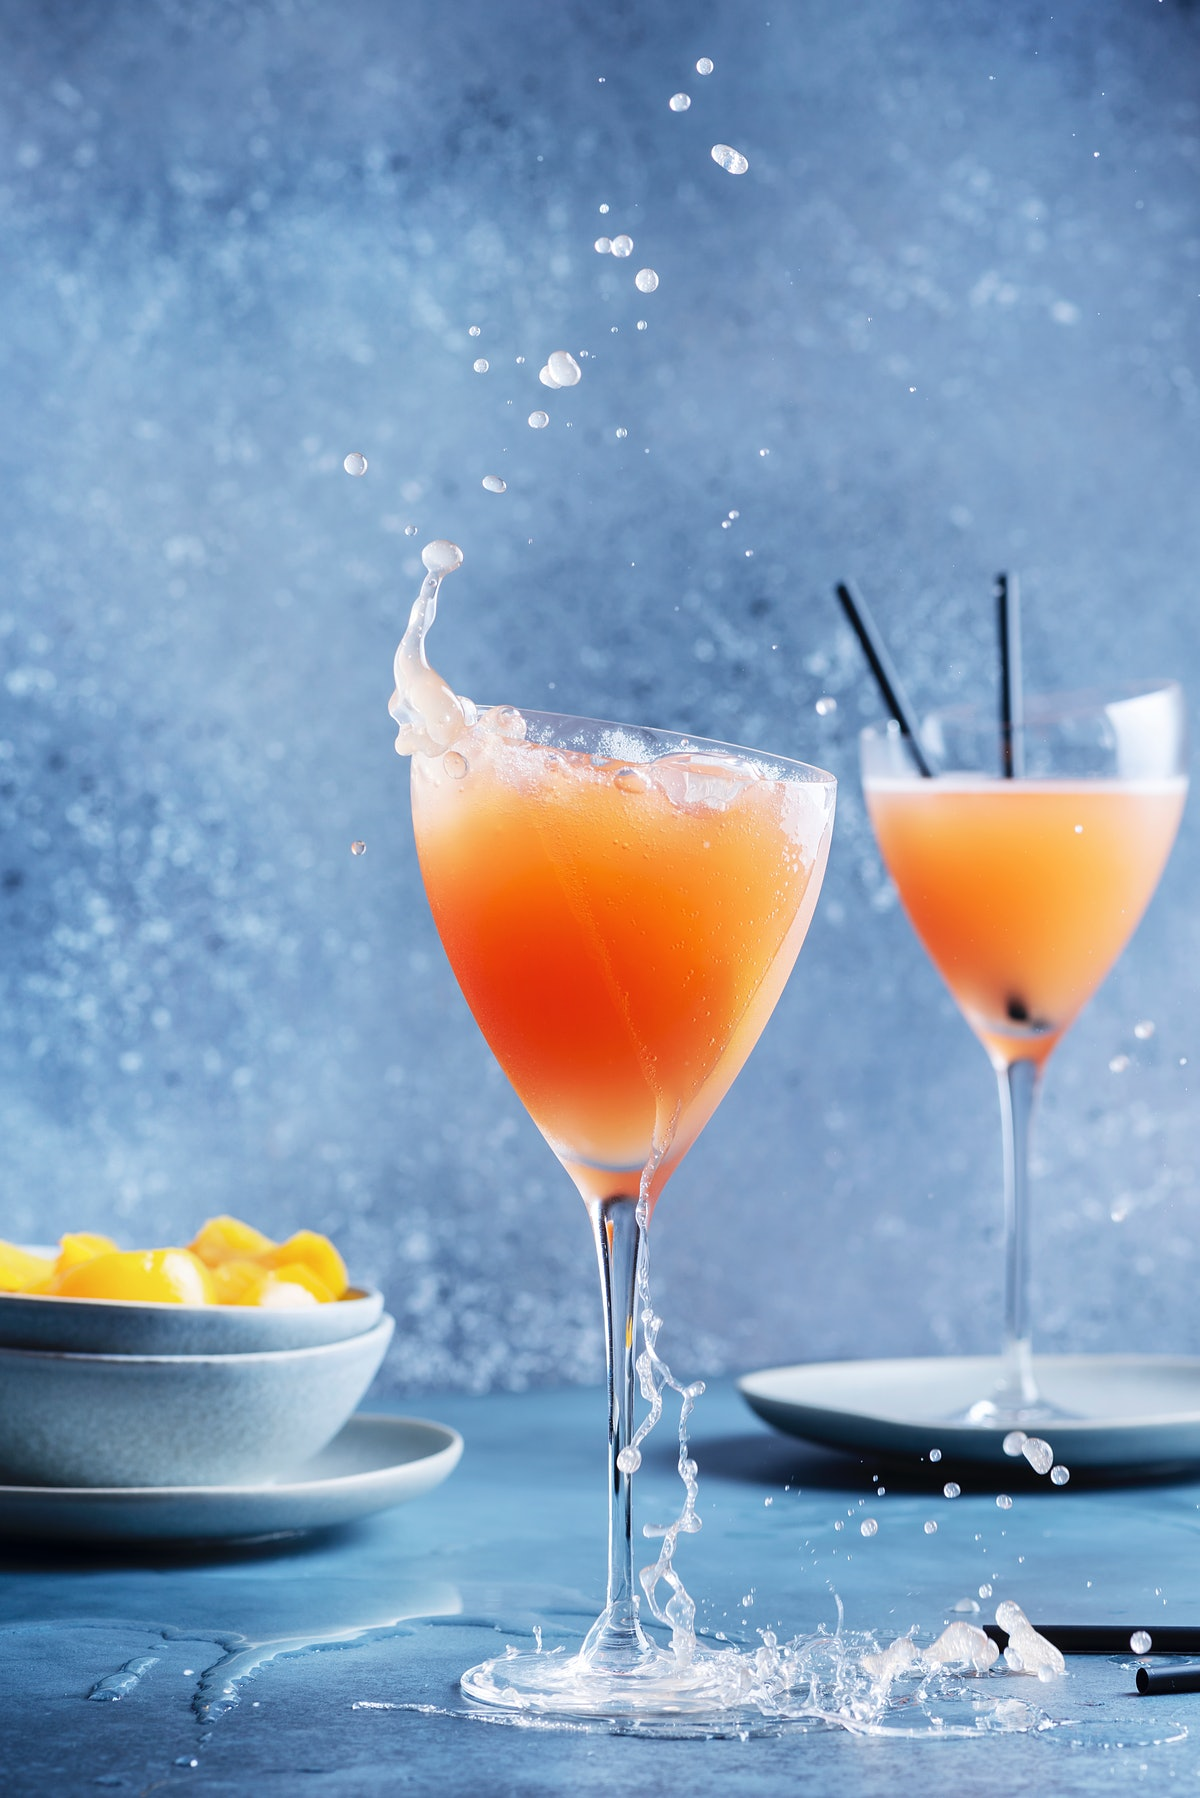 Two bellinis are places on a table with a bowl of peaches next to them.